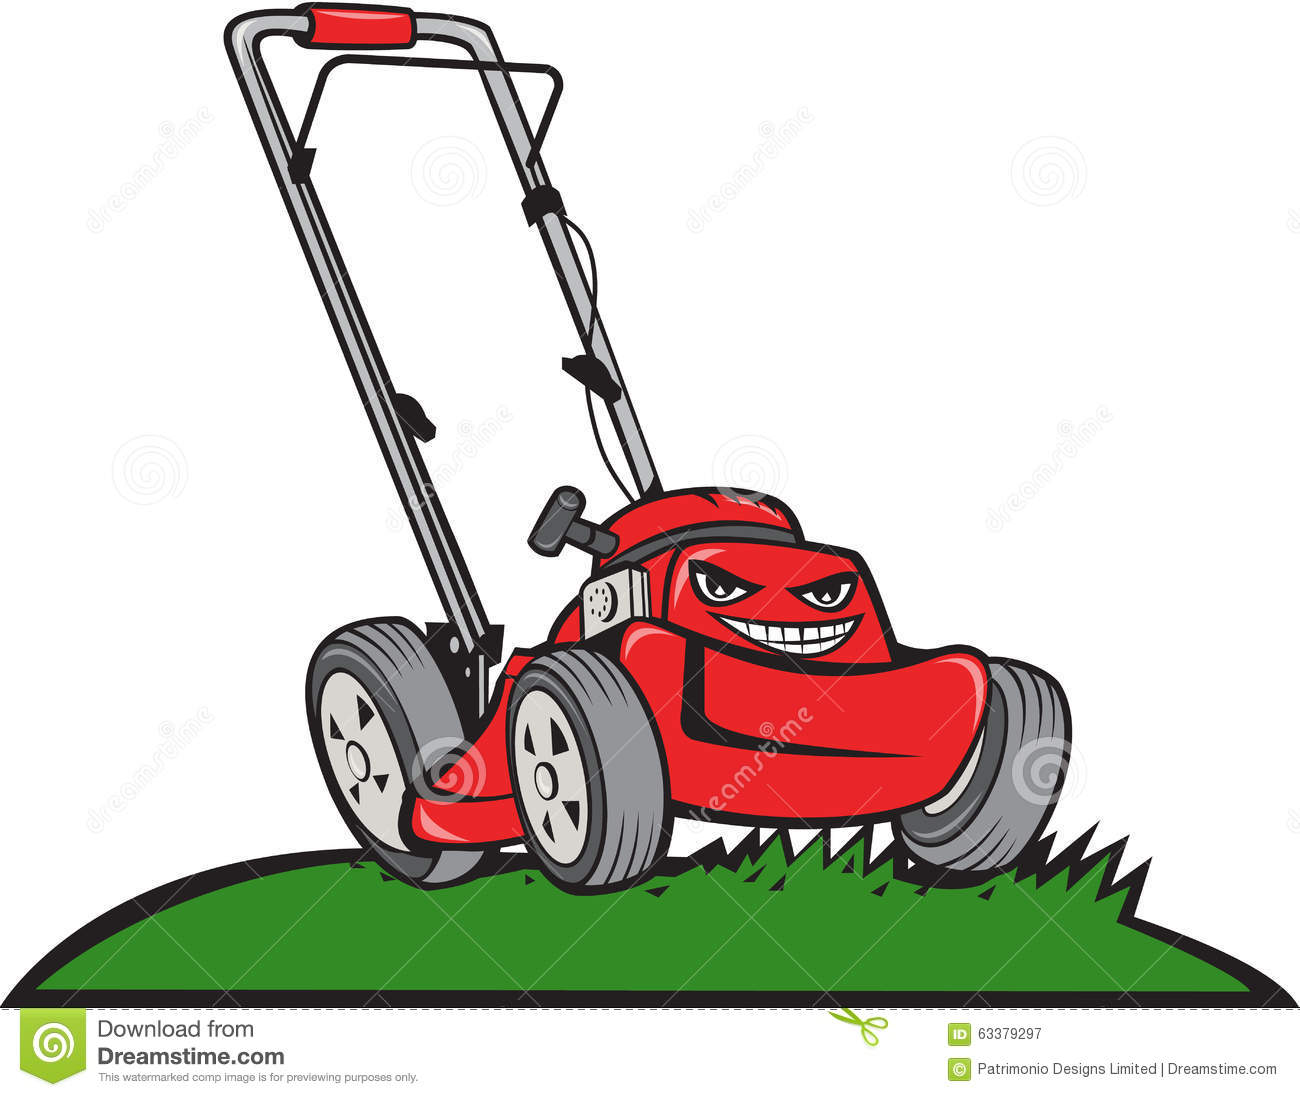 Lawnmower Front Isolated Cartoon Stock Vector - Image ...